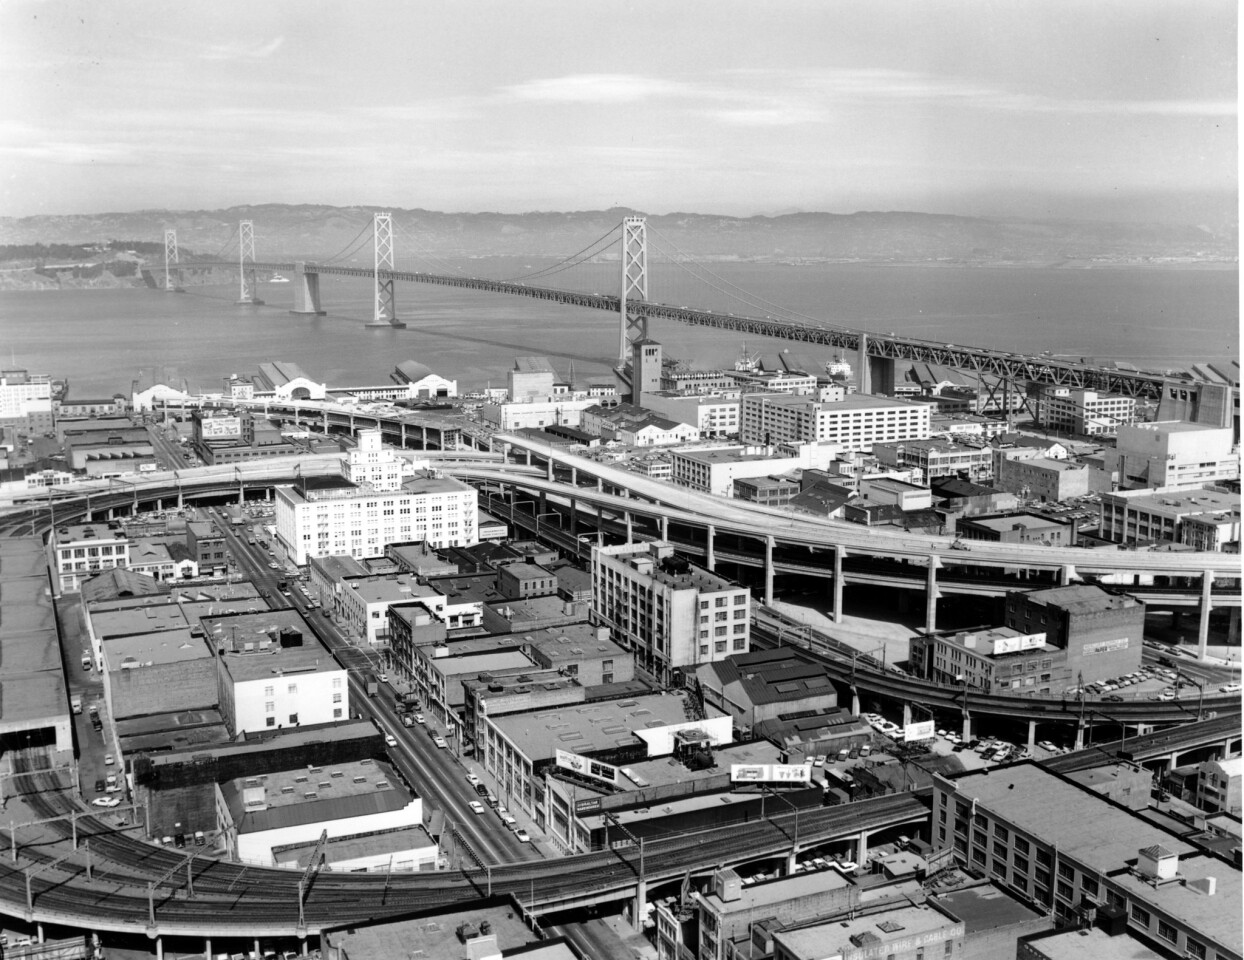 San Francisco has torn down the double-decker Embarcadero Freeway, shown in 1957, and old ramps that once connected streetcar trains from the old Transbay Terminal to the Bay Bridge. The freeway was closed after it was damaged in the 1989 Loma Prieta earthquake.